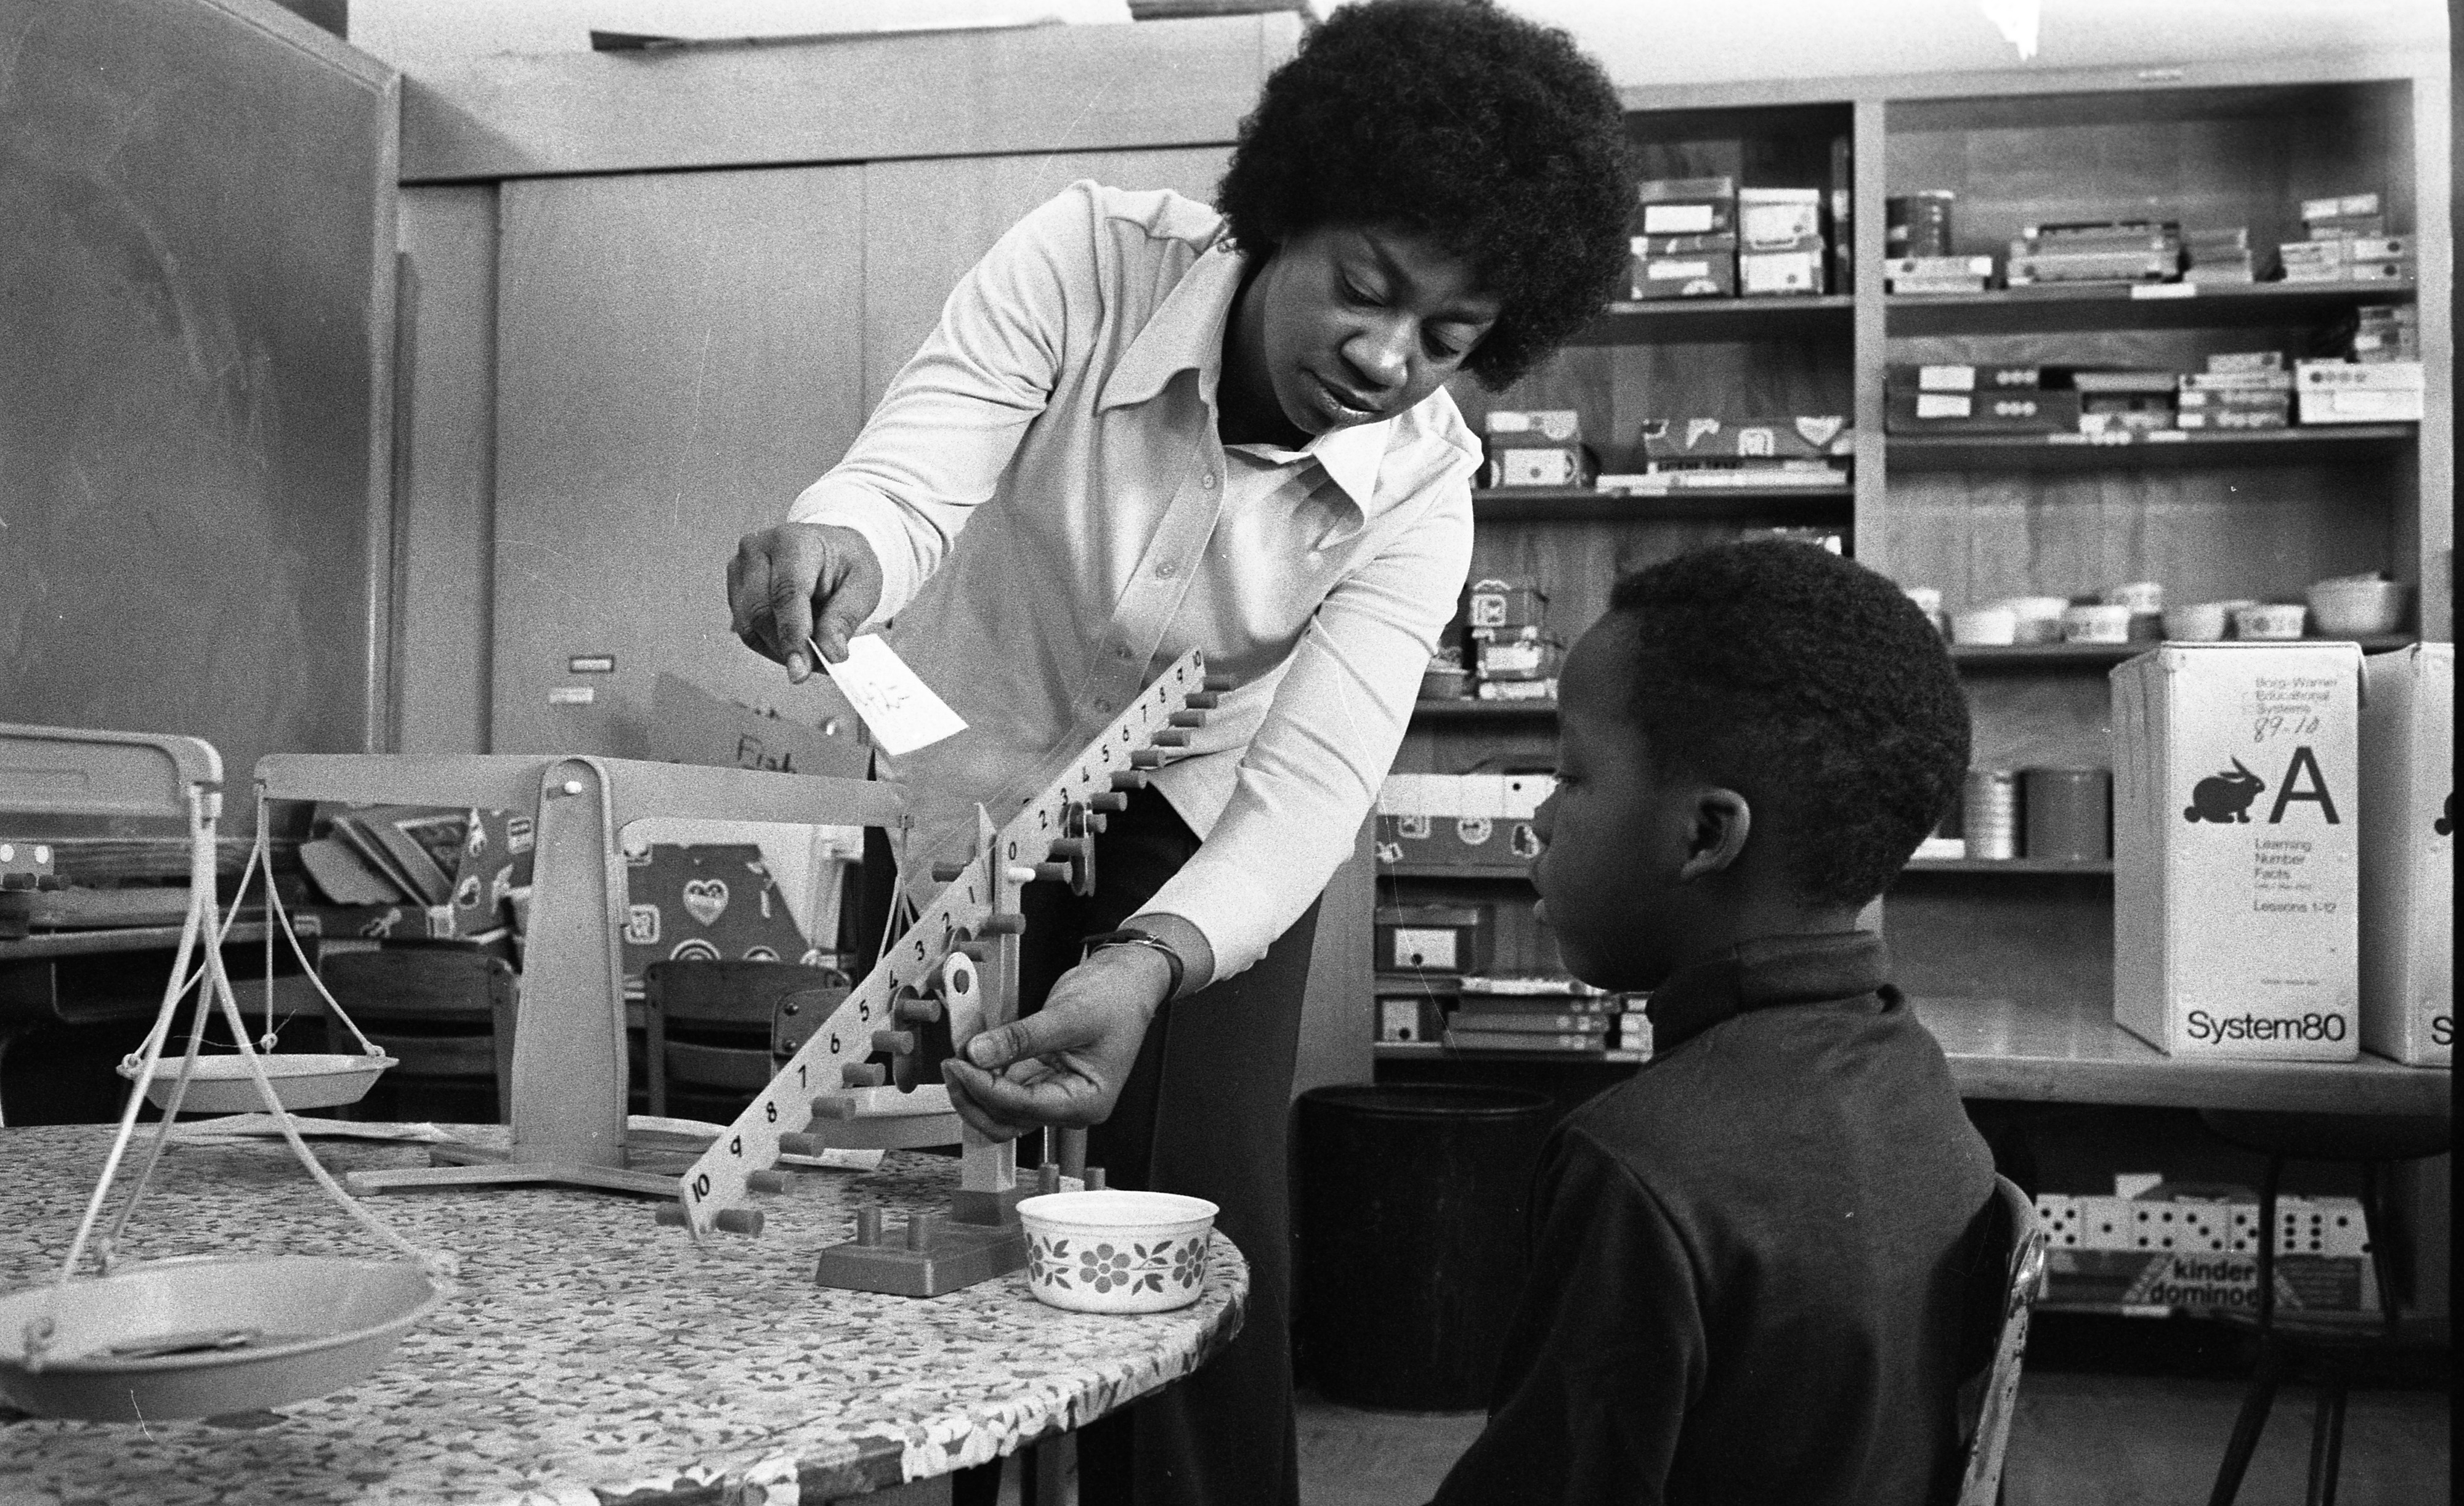 Weights and Scales Lesson at Perry School, Ypsilanti, January 1976 image